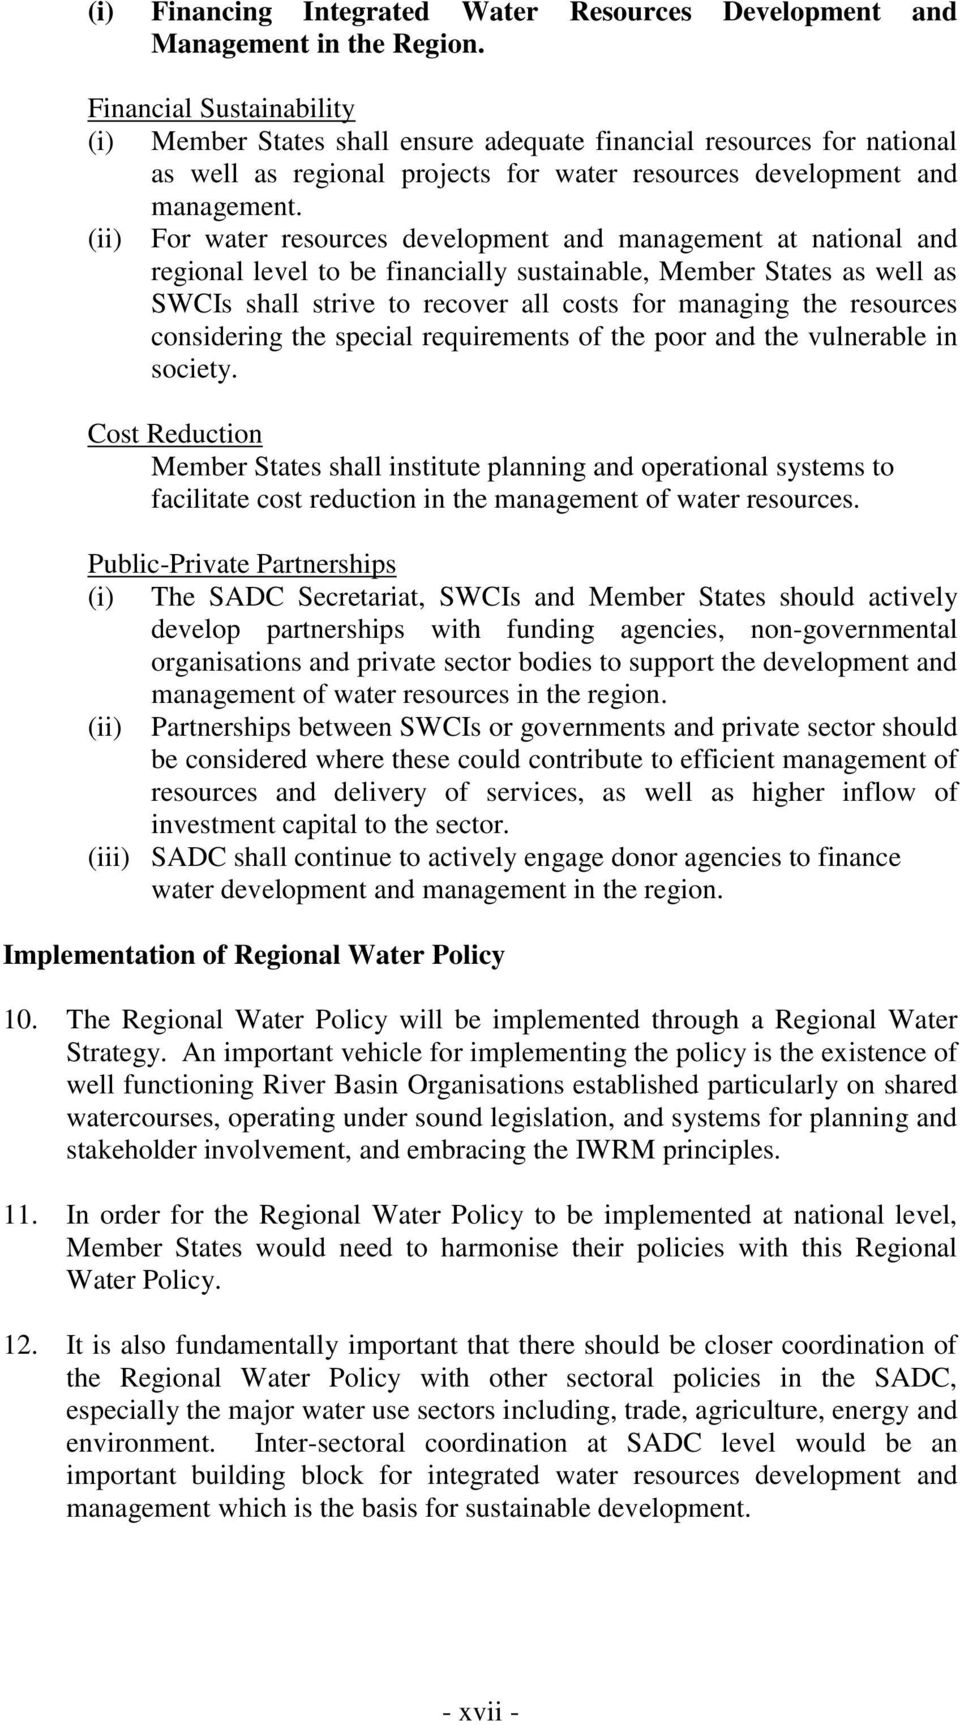 (ii) For water resources development and management at national and regional level to be financially sustainable, Member States as well as SWCIs shall strive to recover all costs for managing the